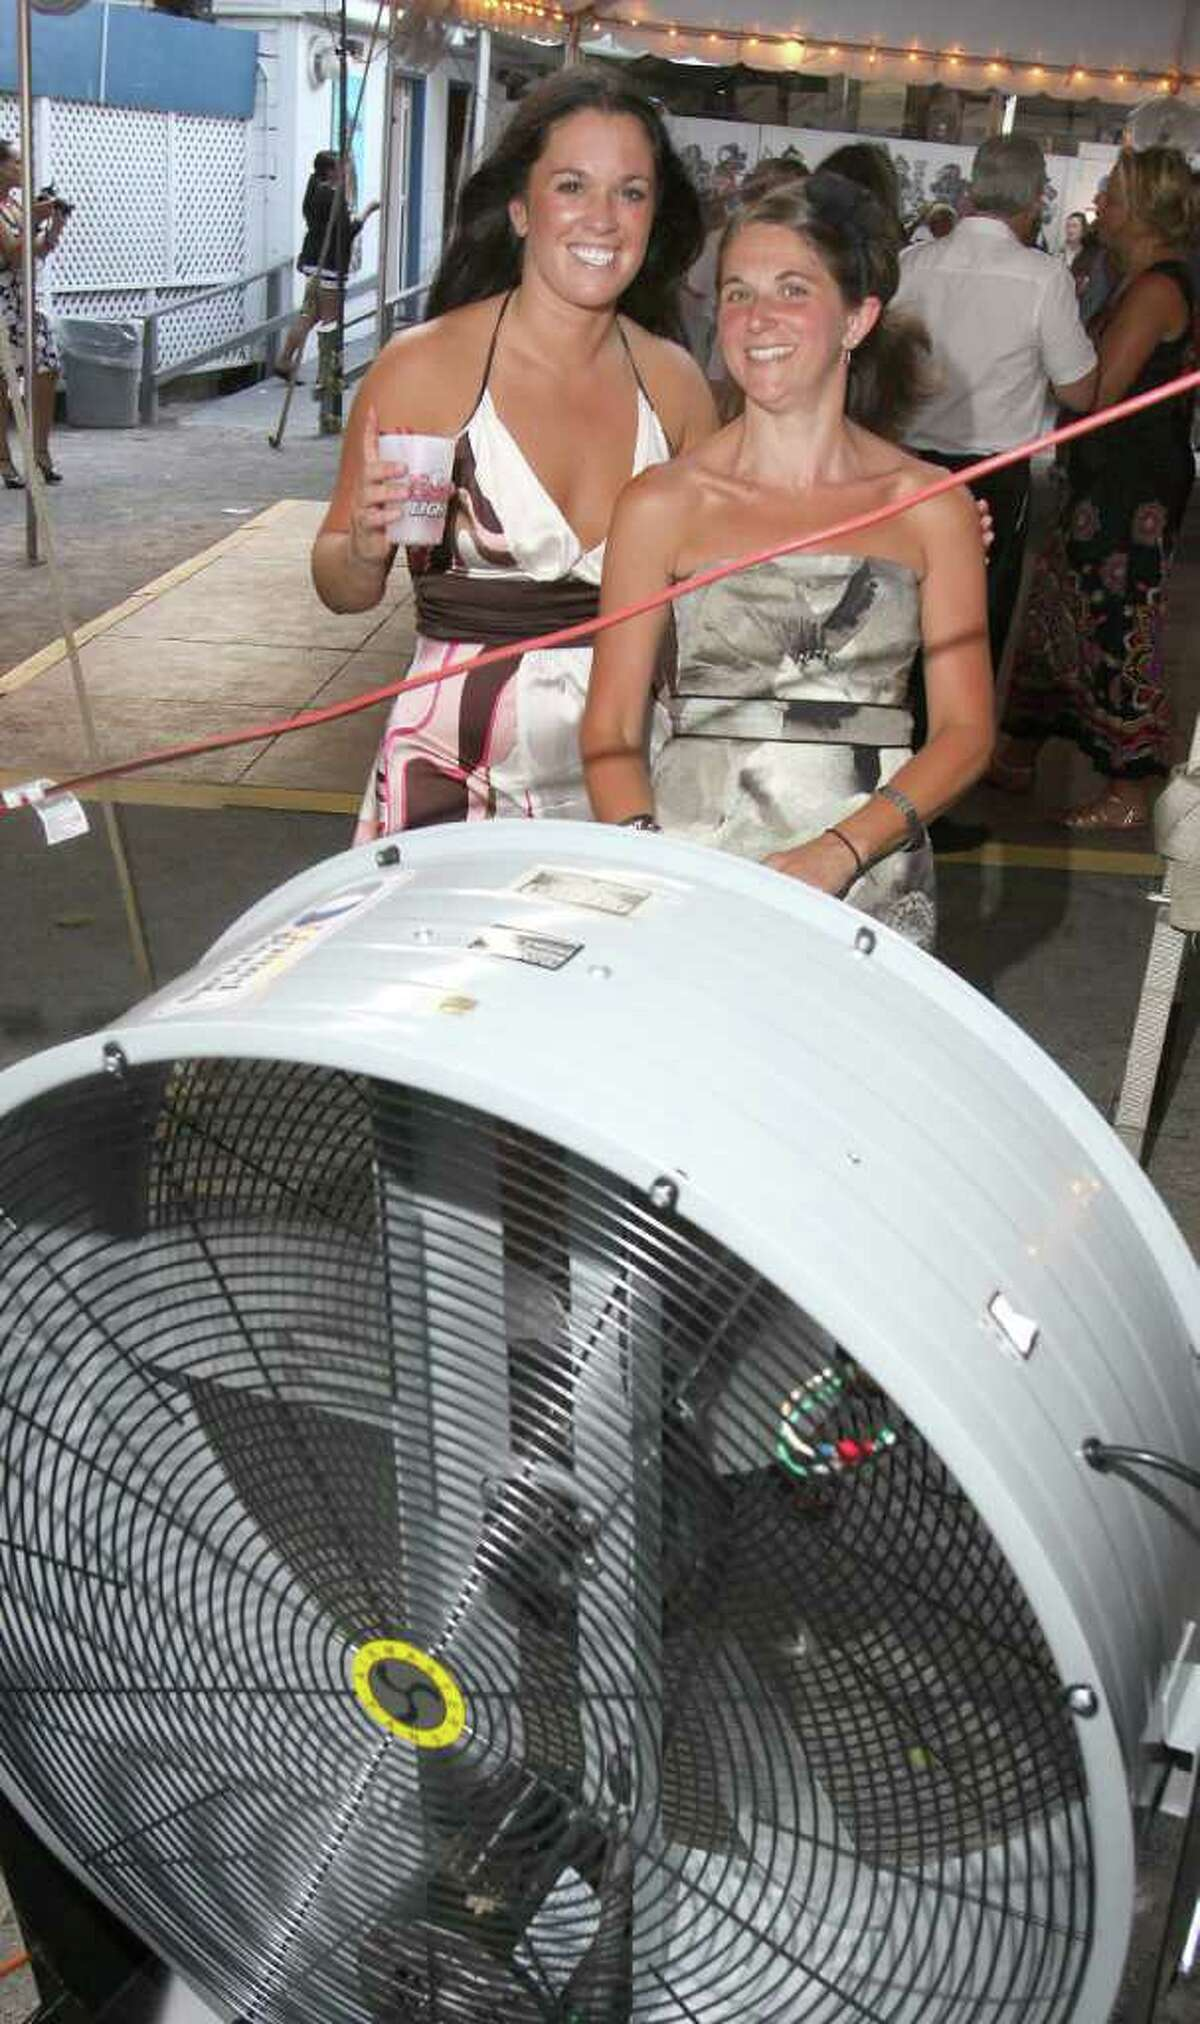 Saratoga Springs, NY - July 21, 2011 - (Photo by Joe Putrock/Special to the Times Union) - Lindsay Donina(left) and Tara Rinaldi(right) try to be the heat by standing in front of a fan during during the 18th Annual Earl B. Feiden Siro?'s Cup to benefit the Center for Disability Services Foundation.